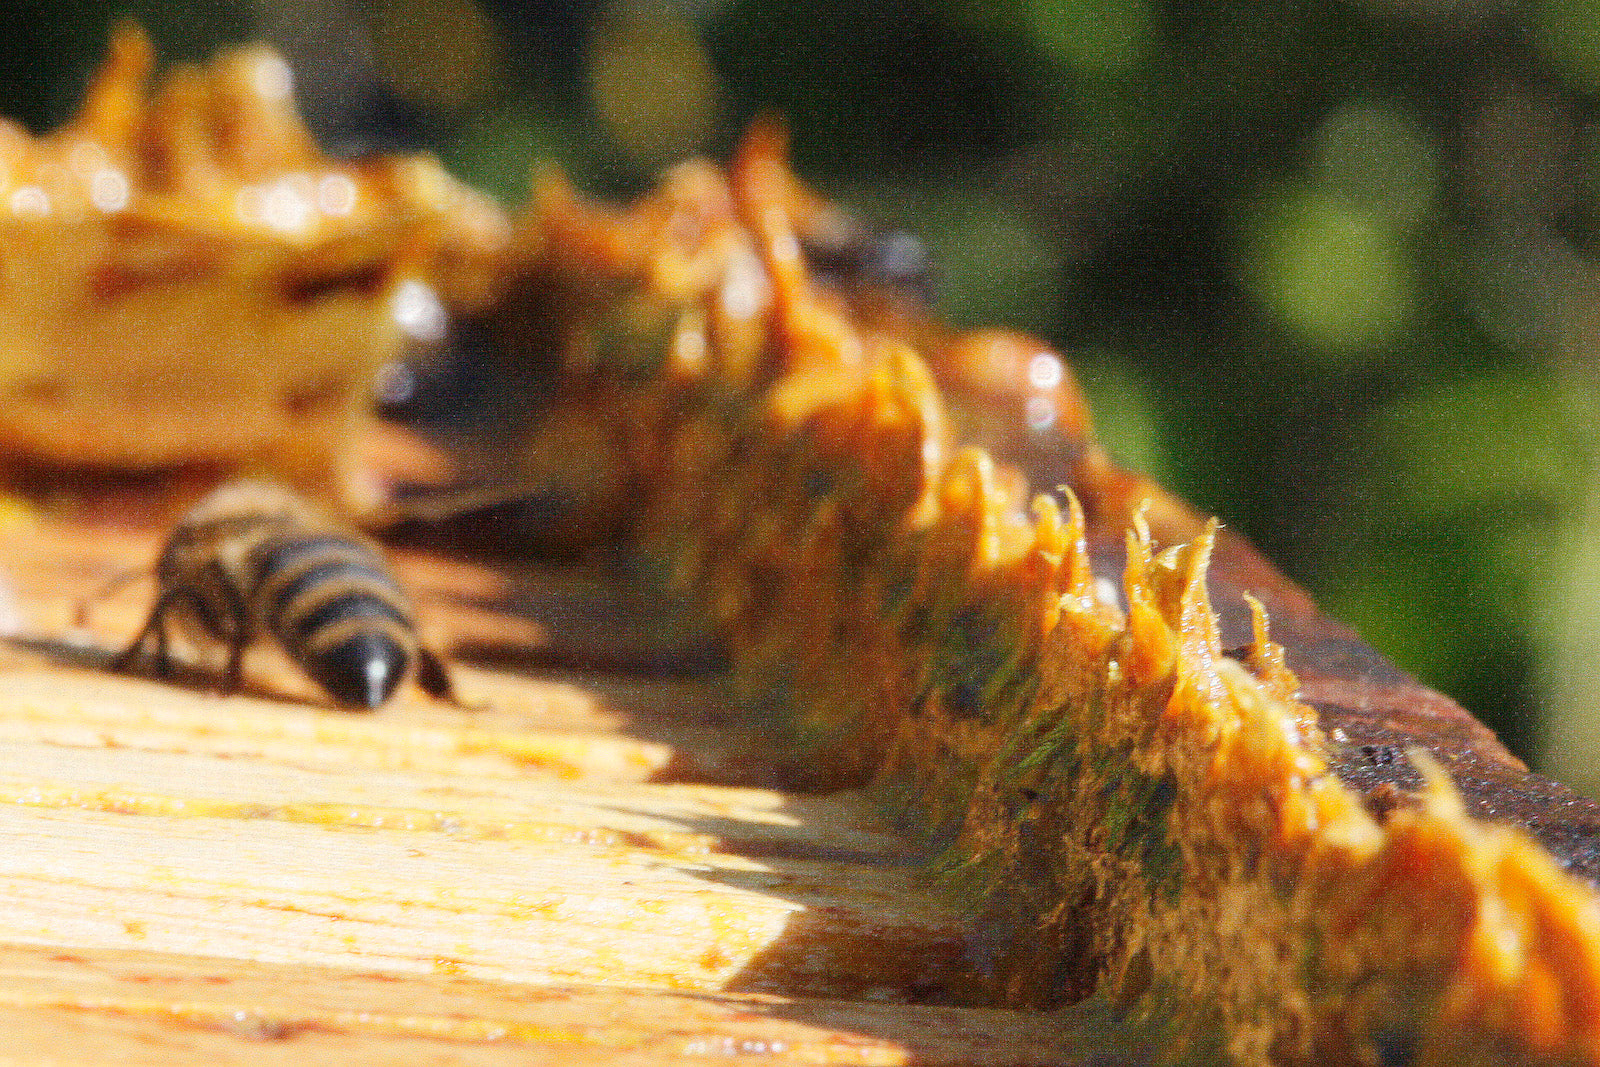 propolis on hive with bee nearby